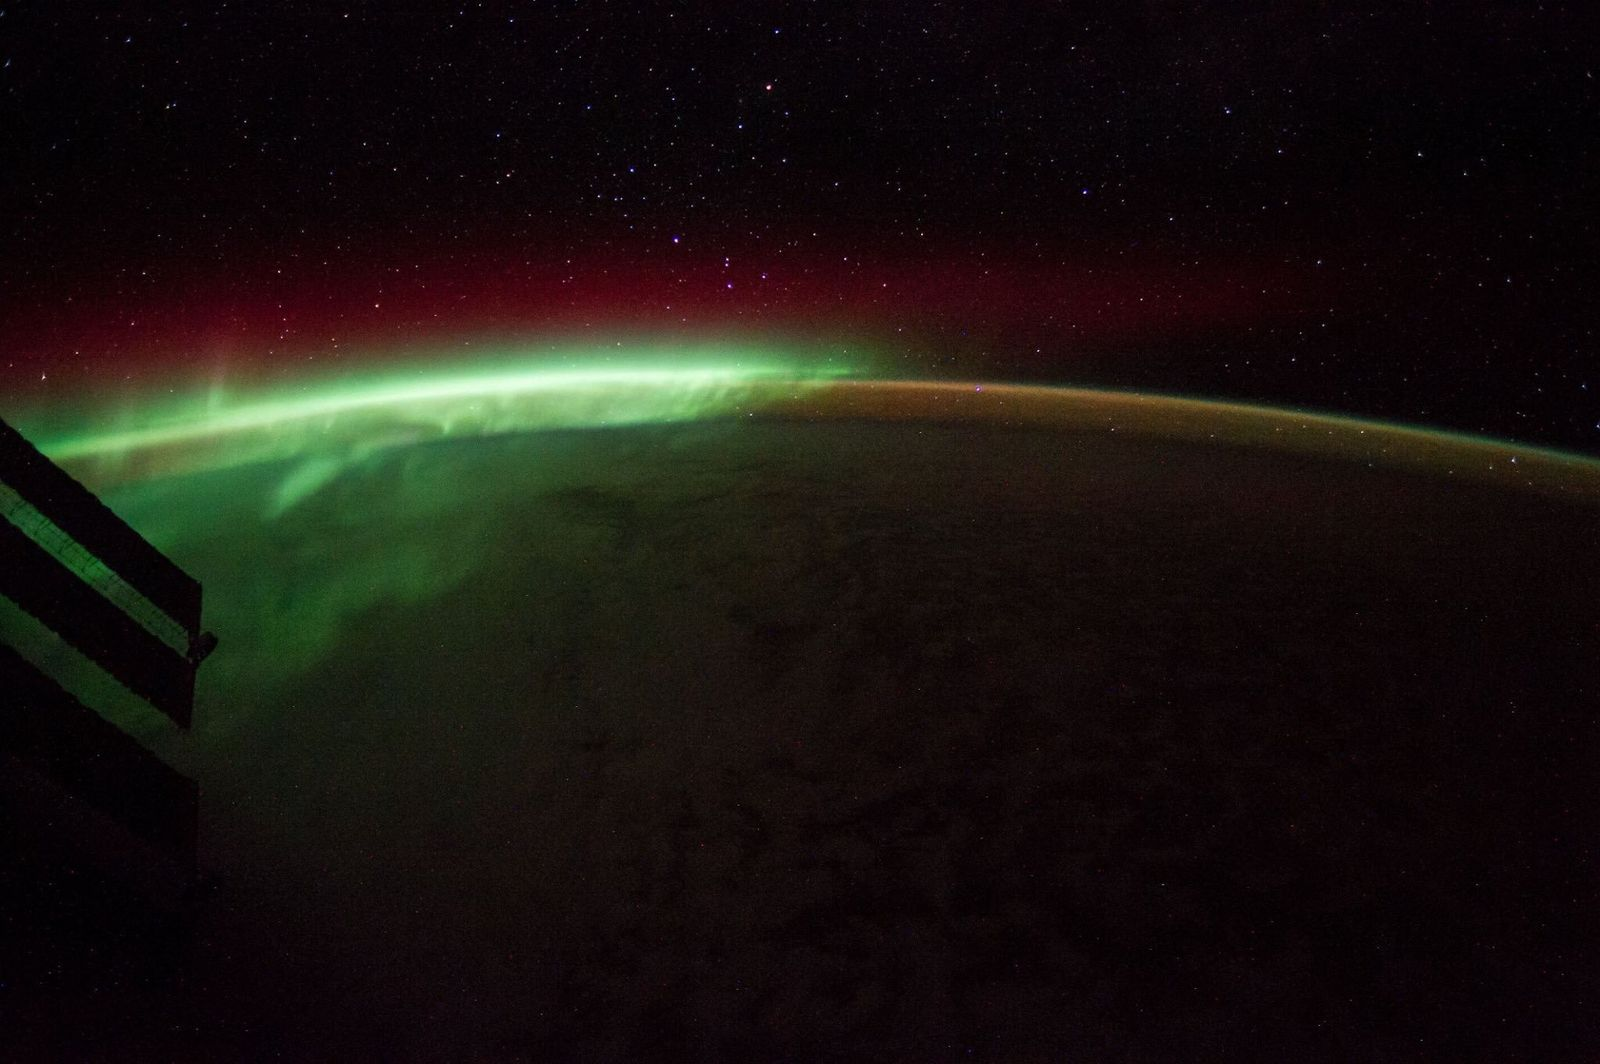 Celebrating #StPatricksDay watching the aurora from @Space_Station this year! (Photo & Caption Nick Hague, NASA)